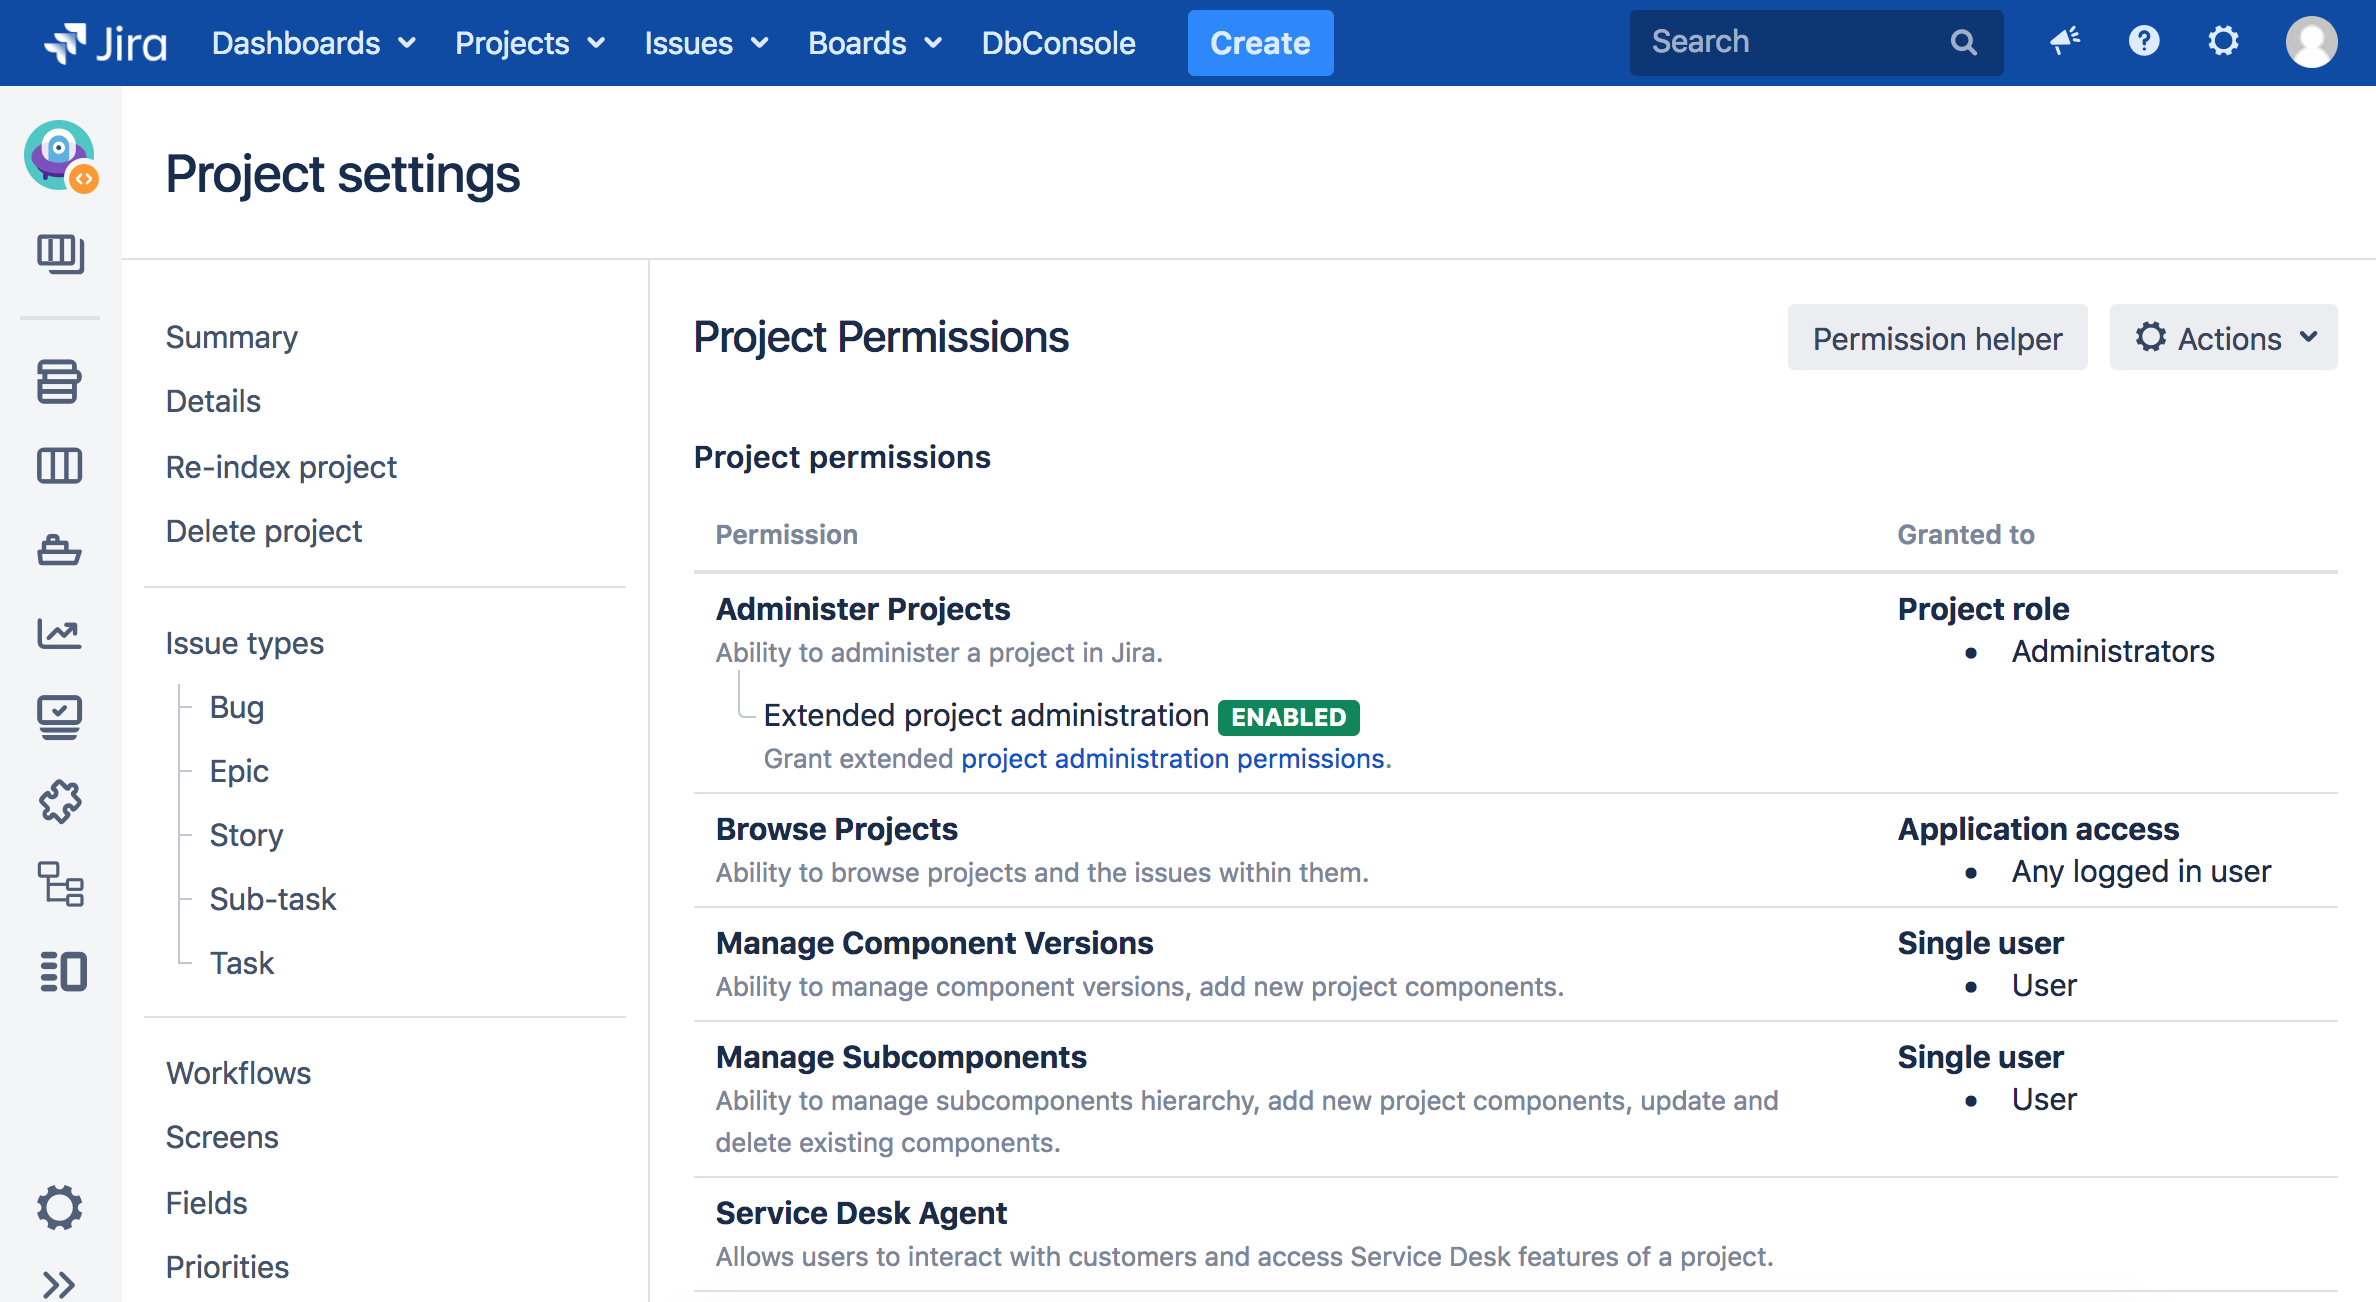 Custom project permissions for subcomponents and component